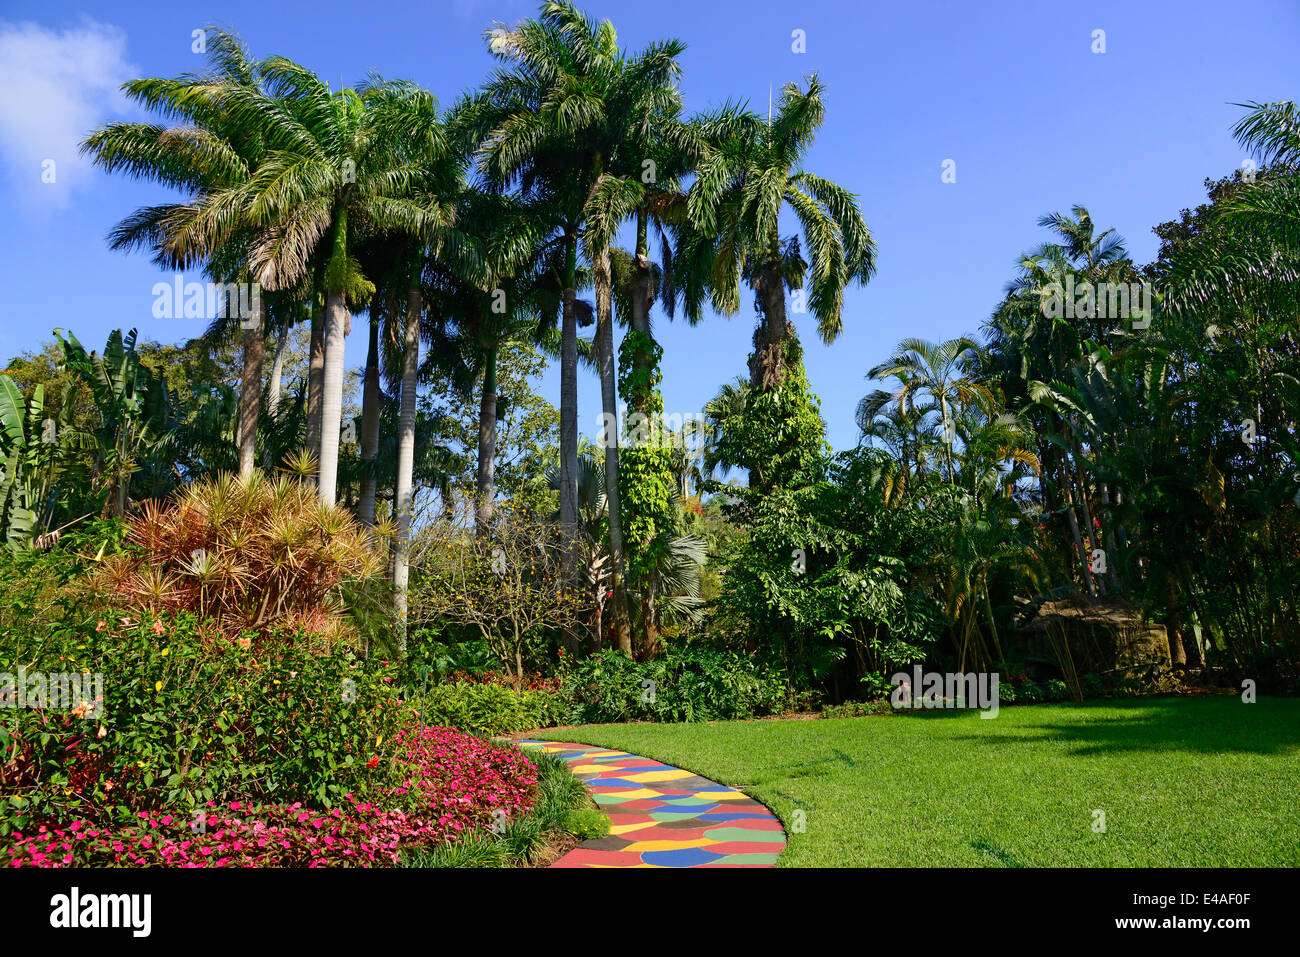 Sunken Gardens Botanical Colorful Path Palm Trees St Petersburg Fl Stock Photo Royalty Free